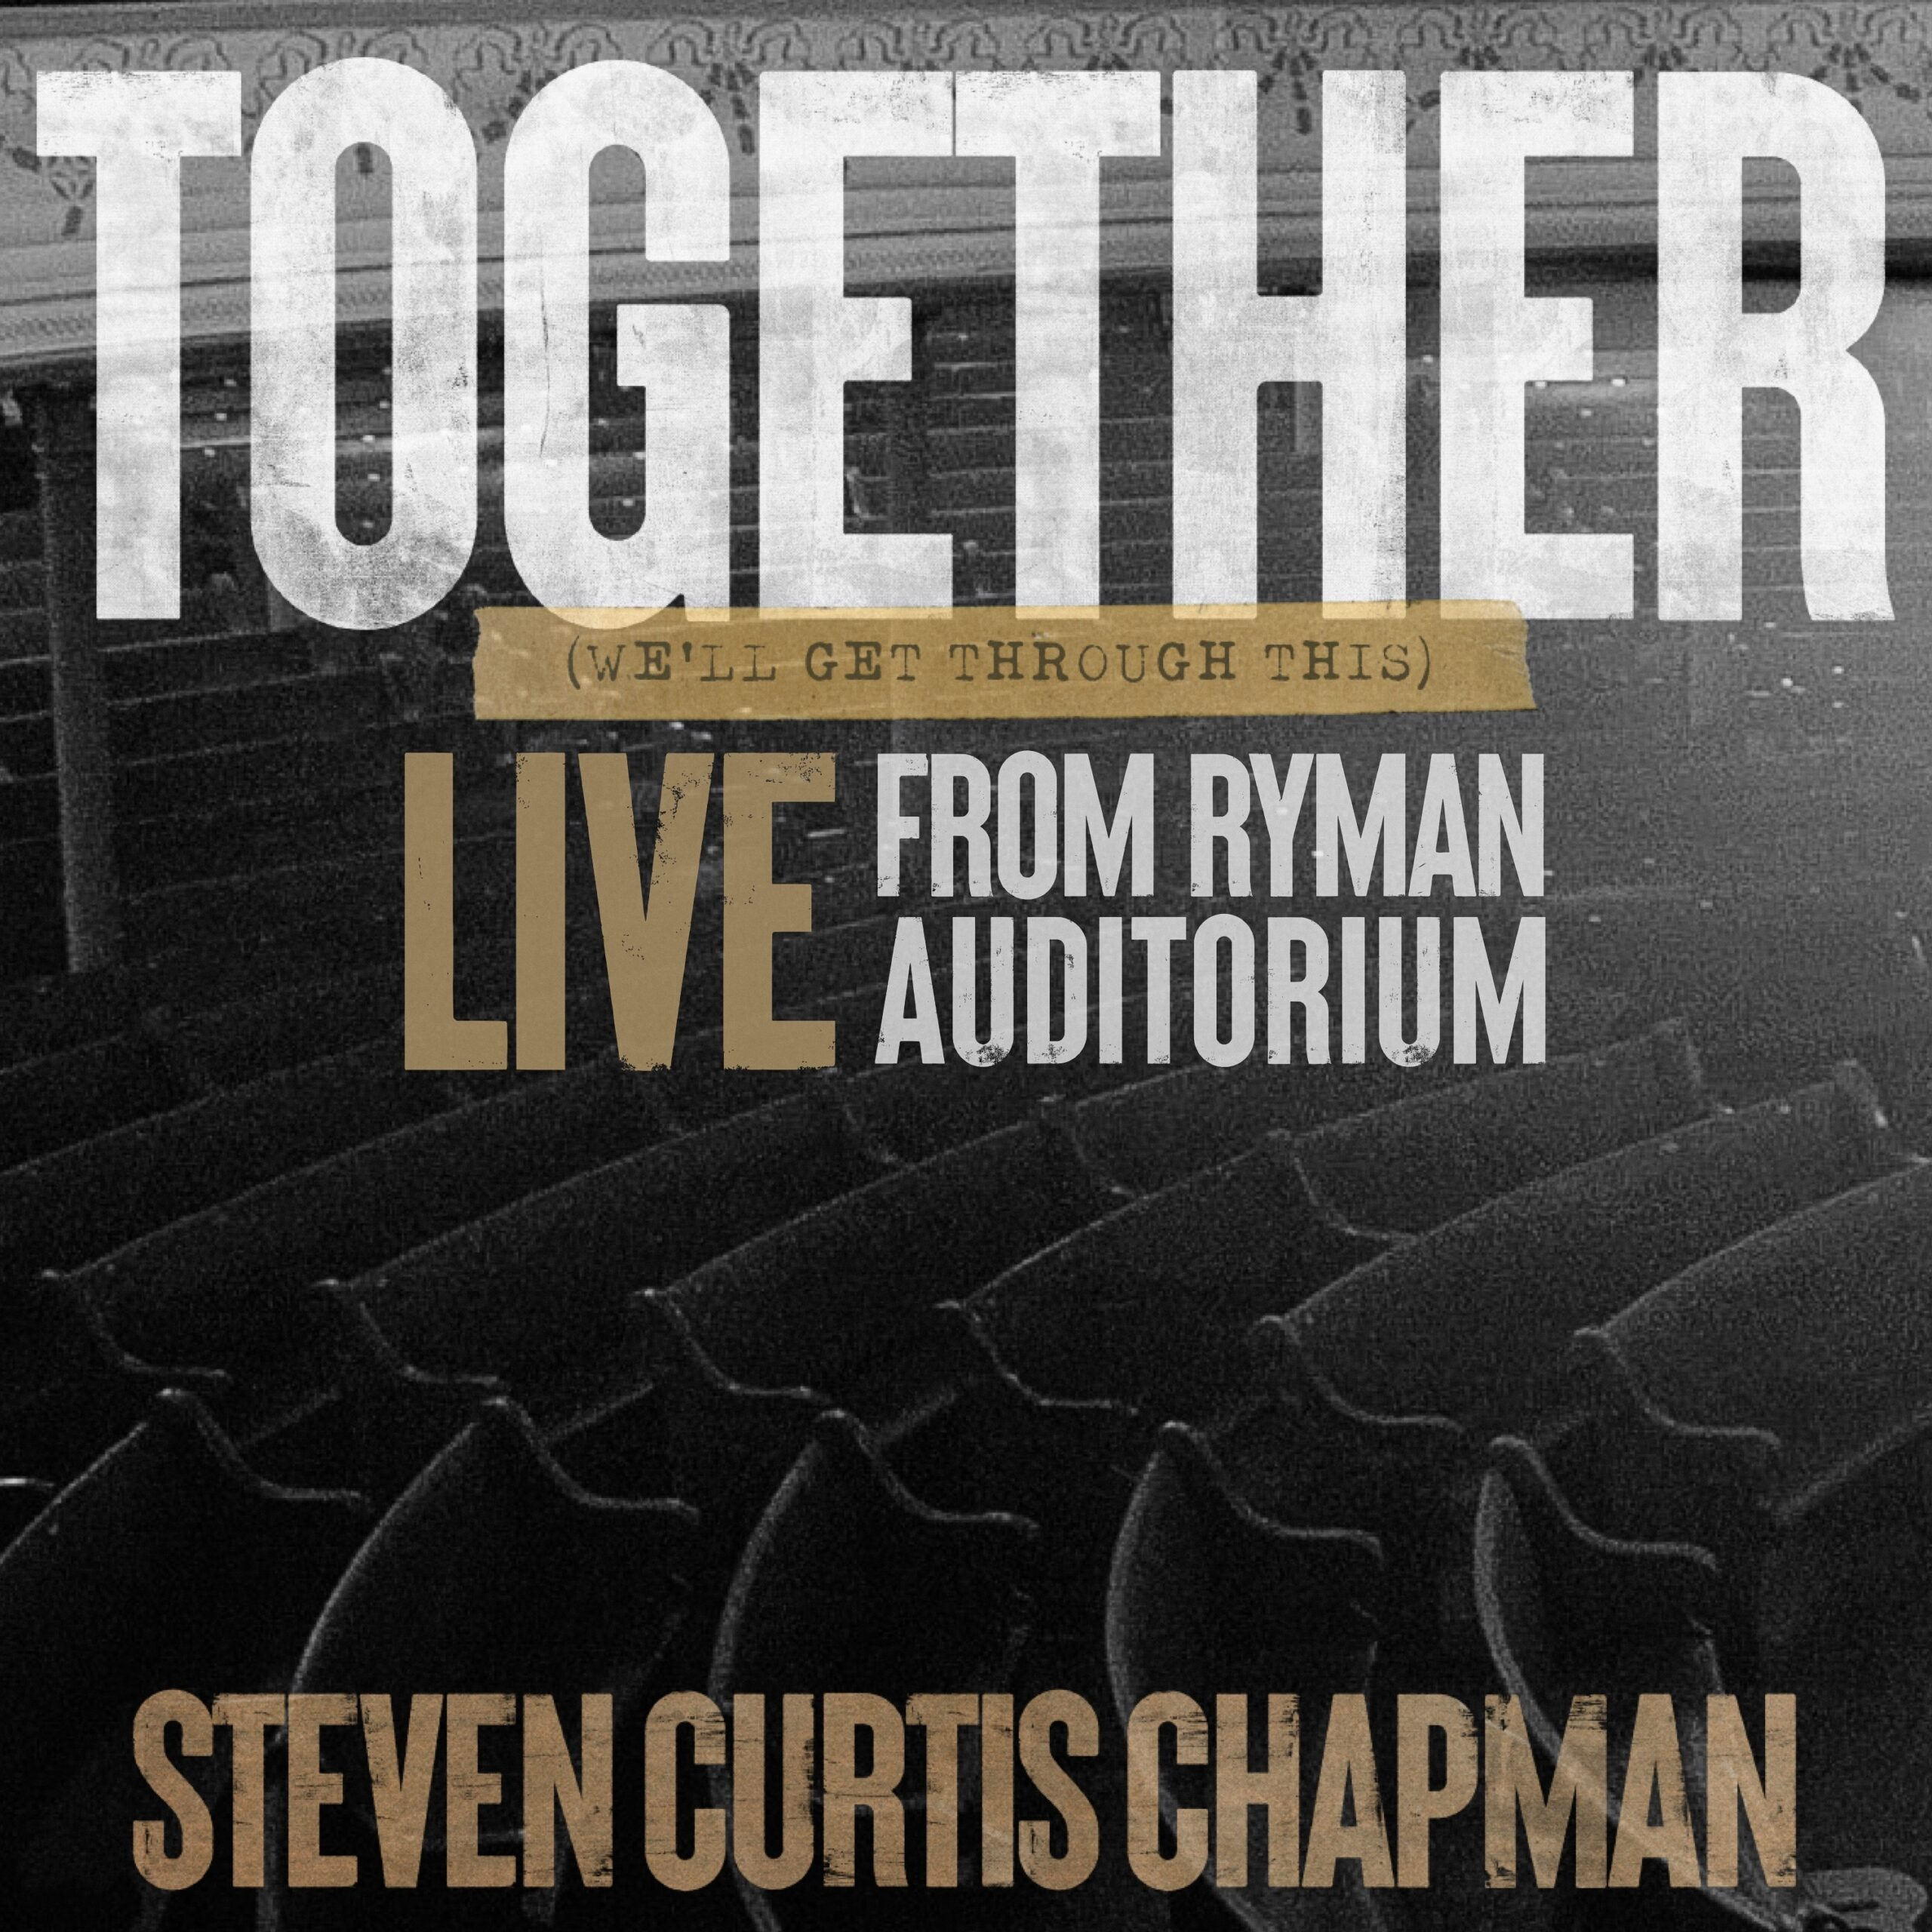 """Music News: Steven Curtis Chapman Releases """"Together (We'll Get Through This) Live from Ryman Auditorium"""""""